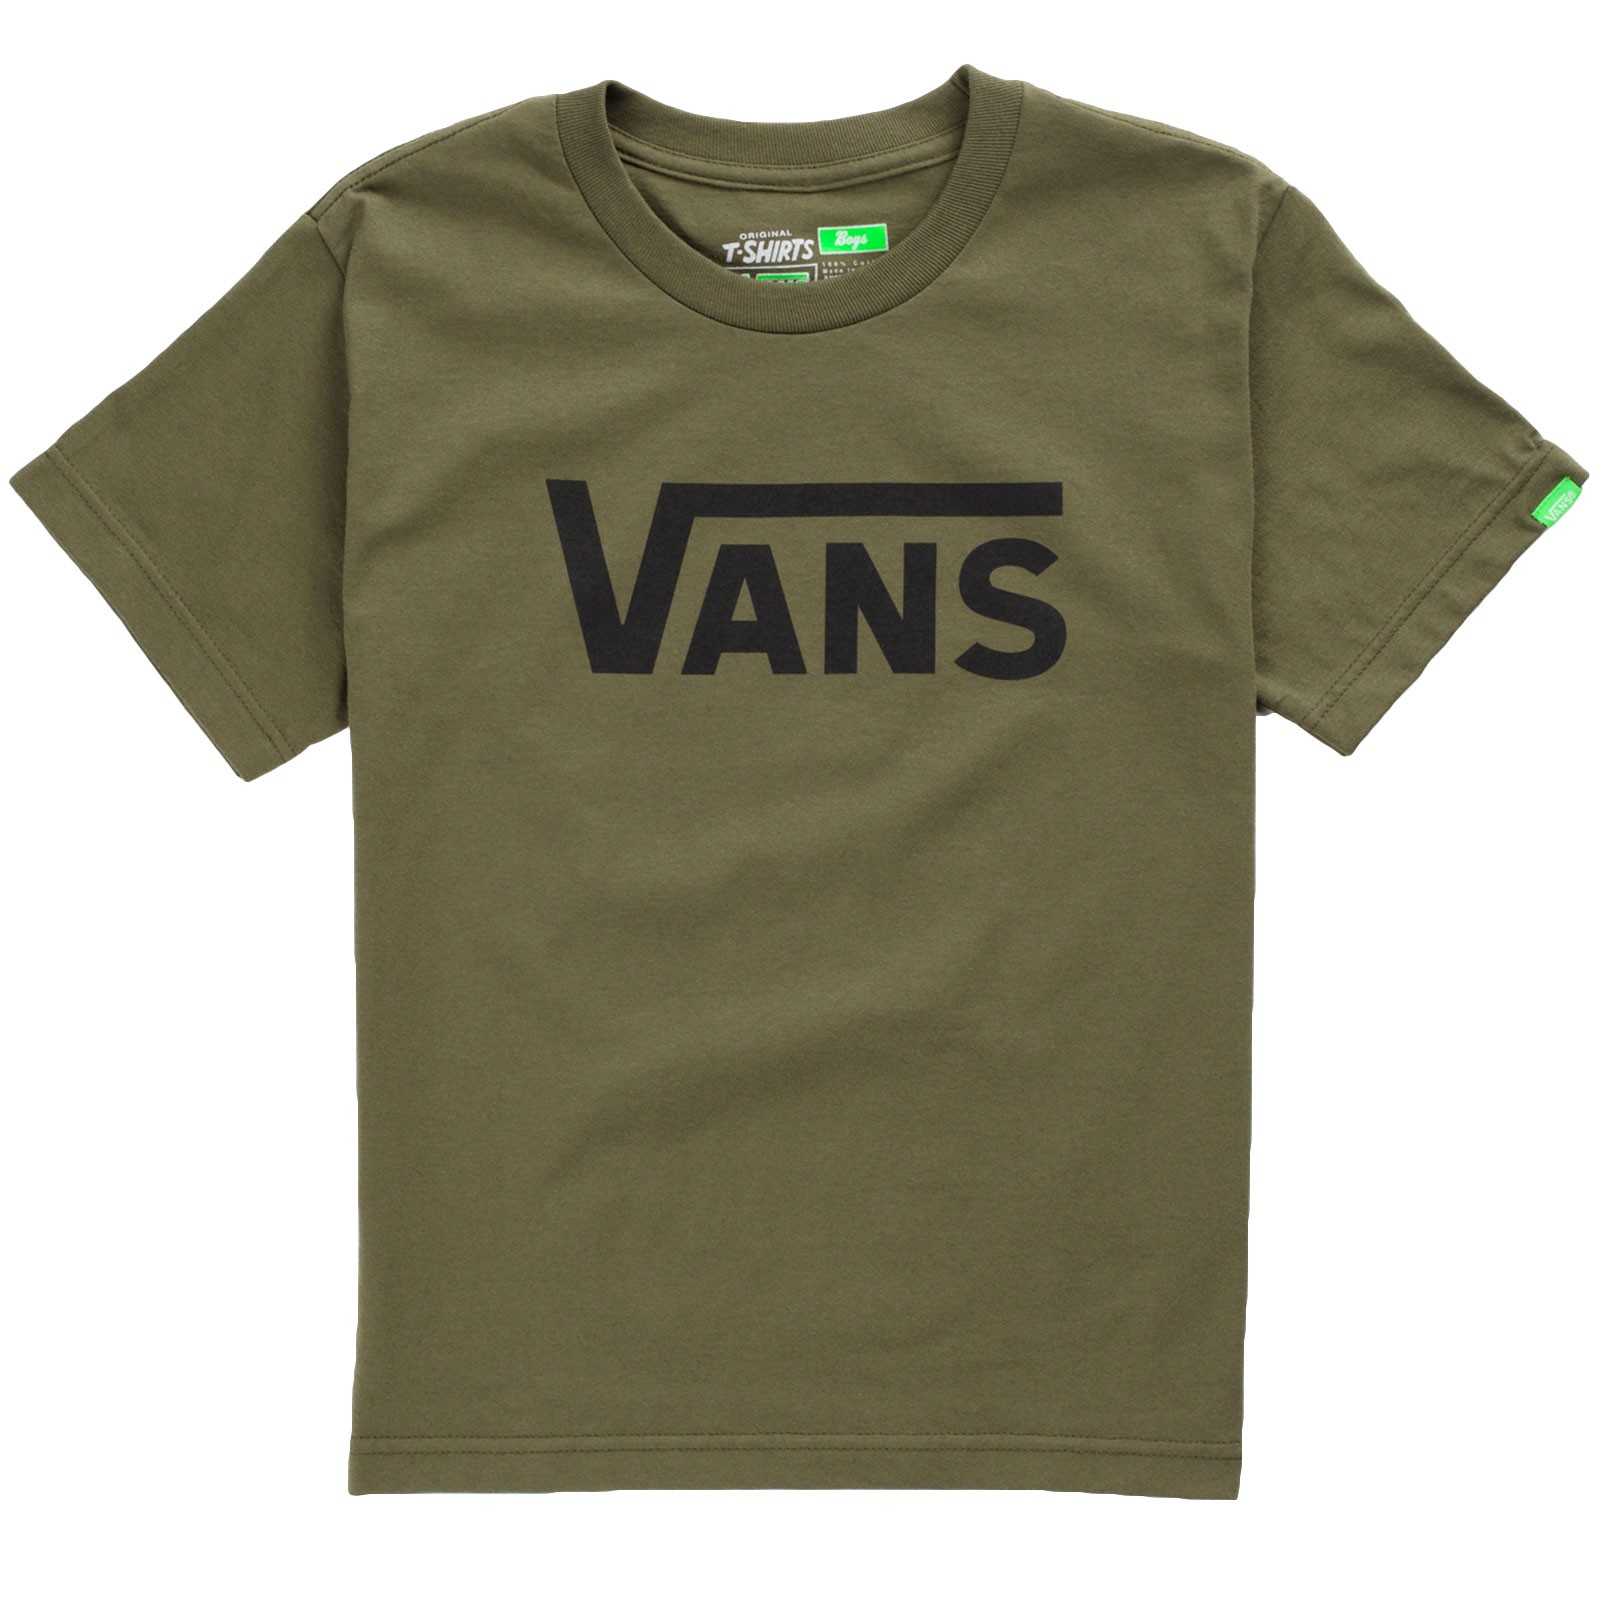 Vans Classic Youth T-Shirt - Military Green / Black